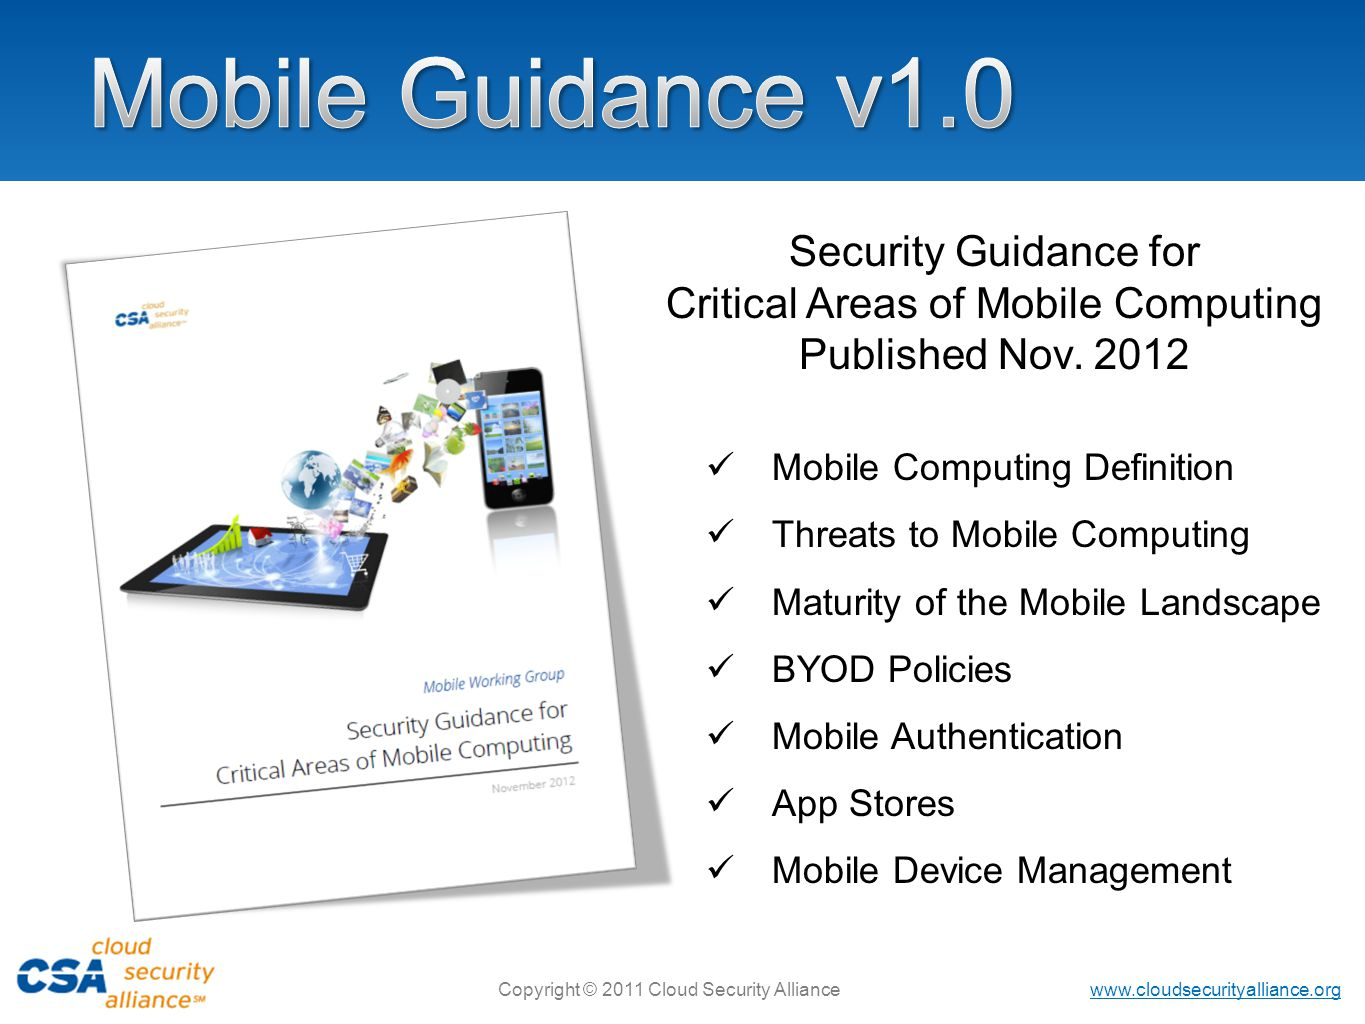 www.cloudsecurityalliance.org Copyright © 2011 Cloud Security Alliance Security Guidance for Critical Areas of Mobile Computing Published Nov. 2012 Mo